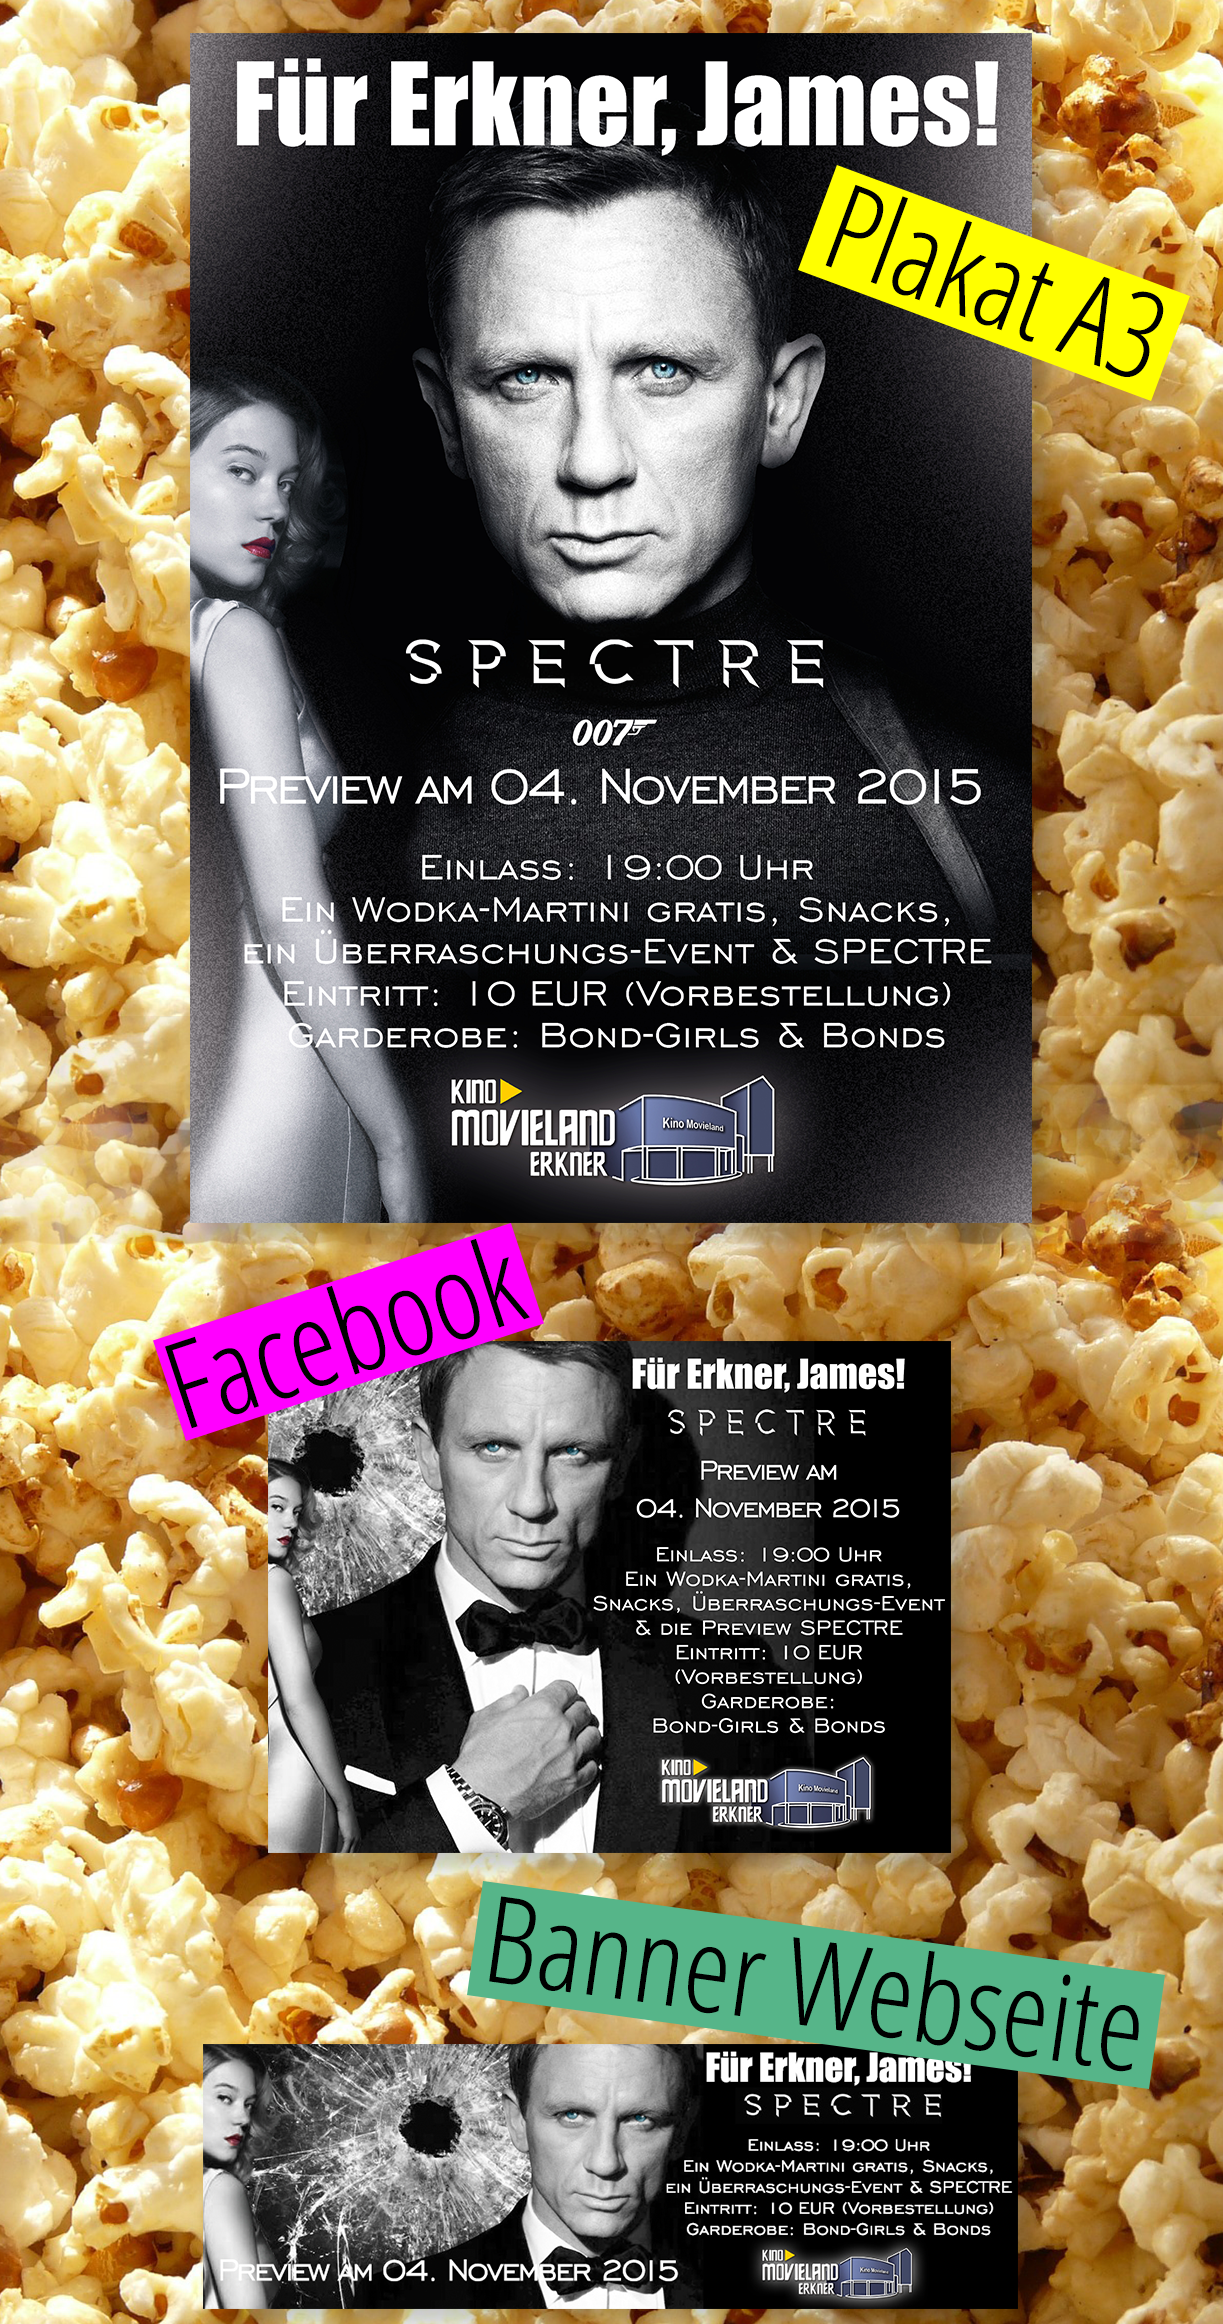 007-james-bond-party-kino-plakate-banner-facebookbild